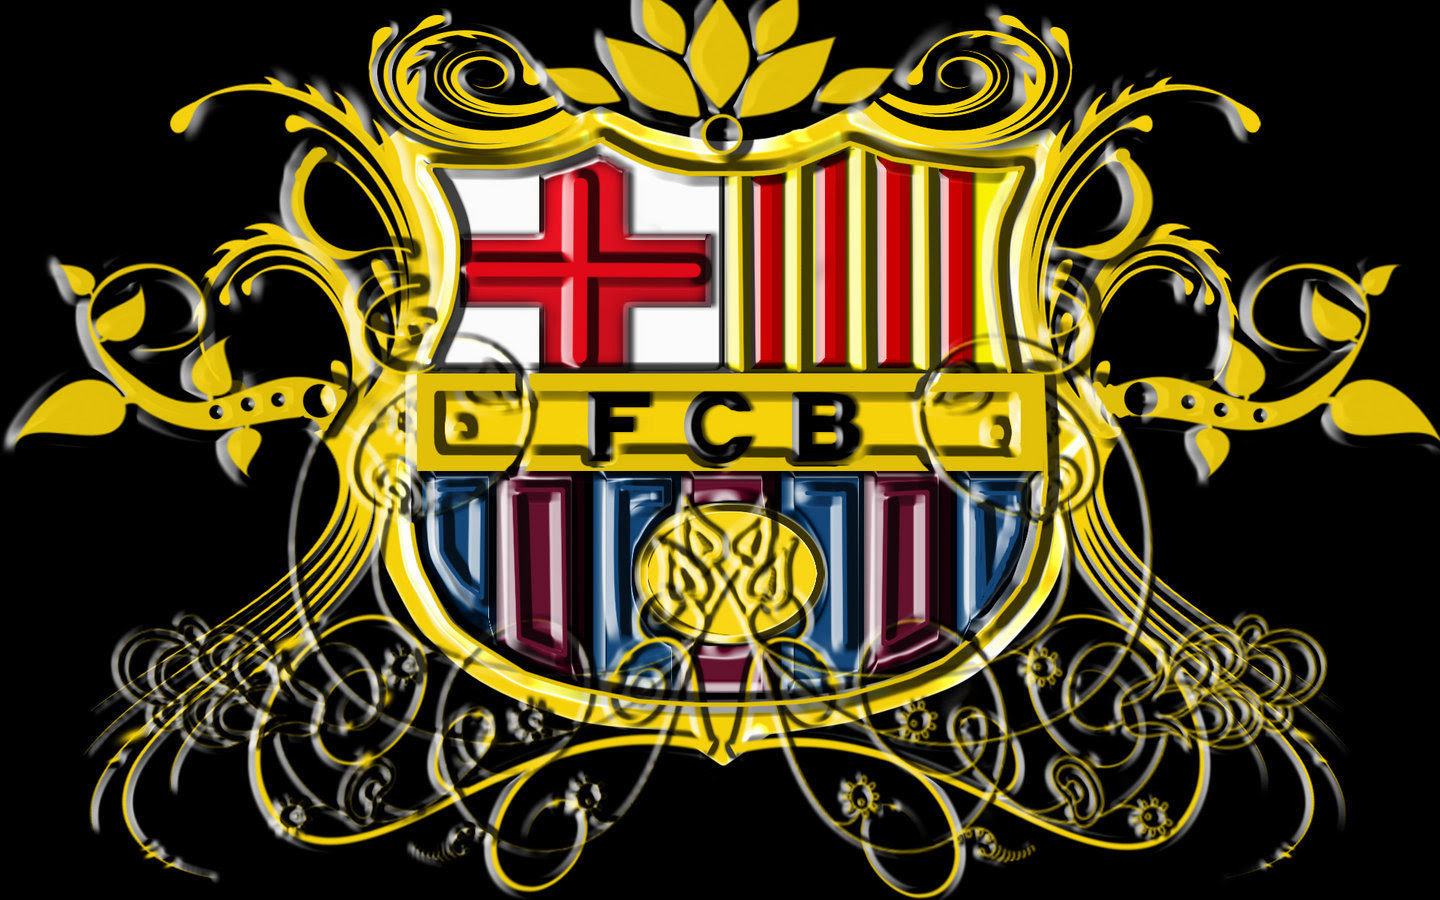 Fc Barcelona Logo Wallpaper Fc Barcelona Wallpaper 22614322 Fanpop